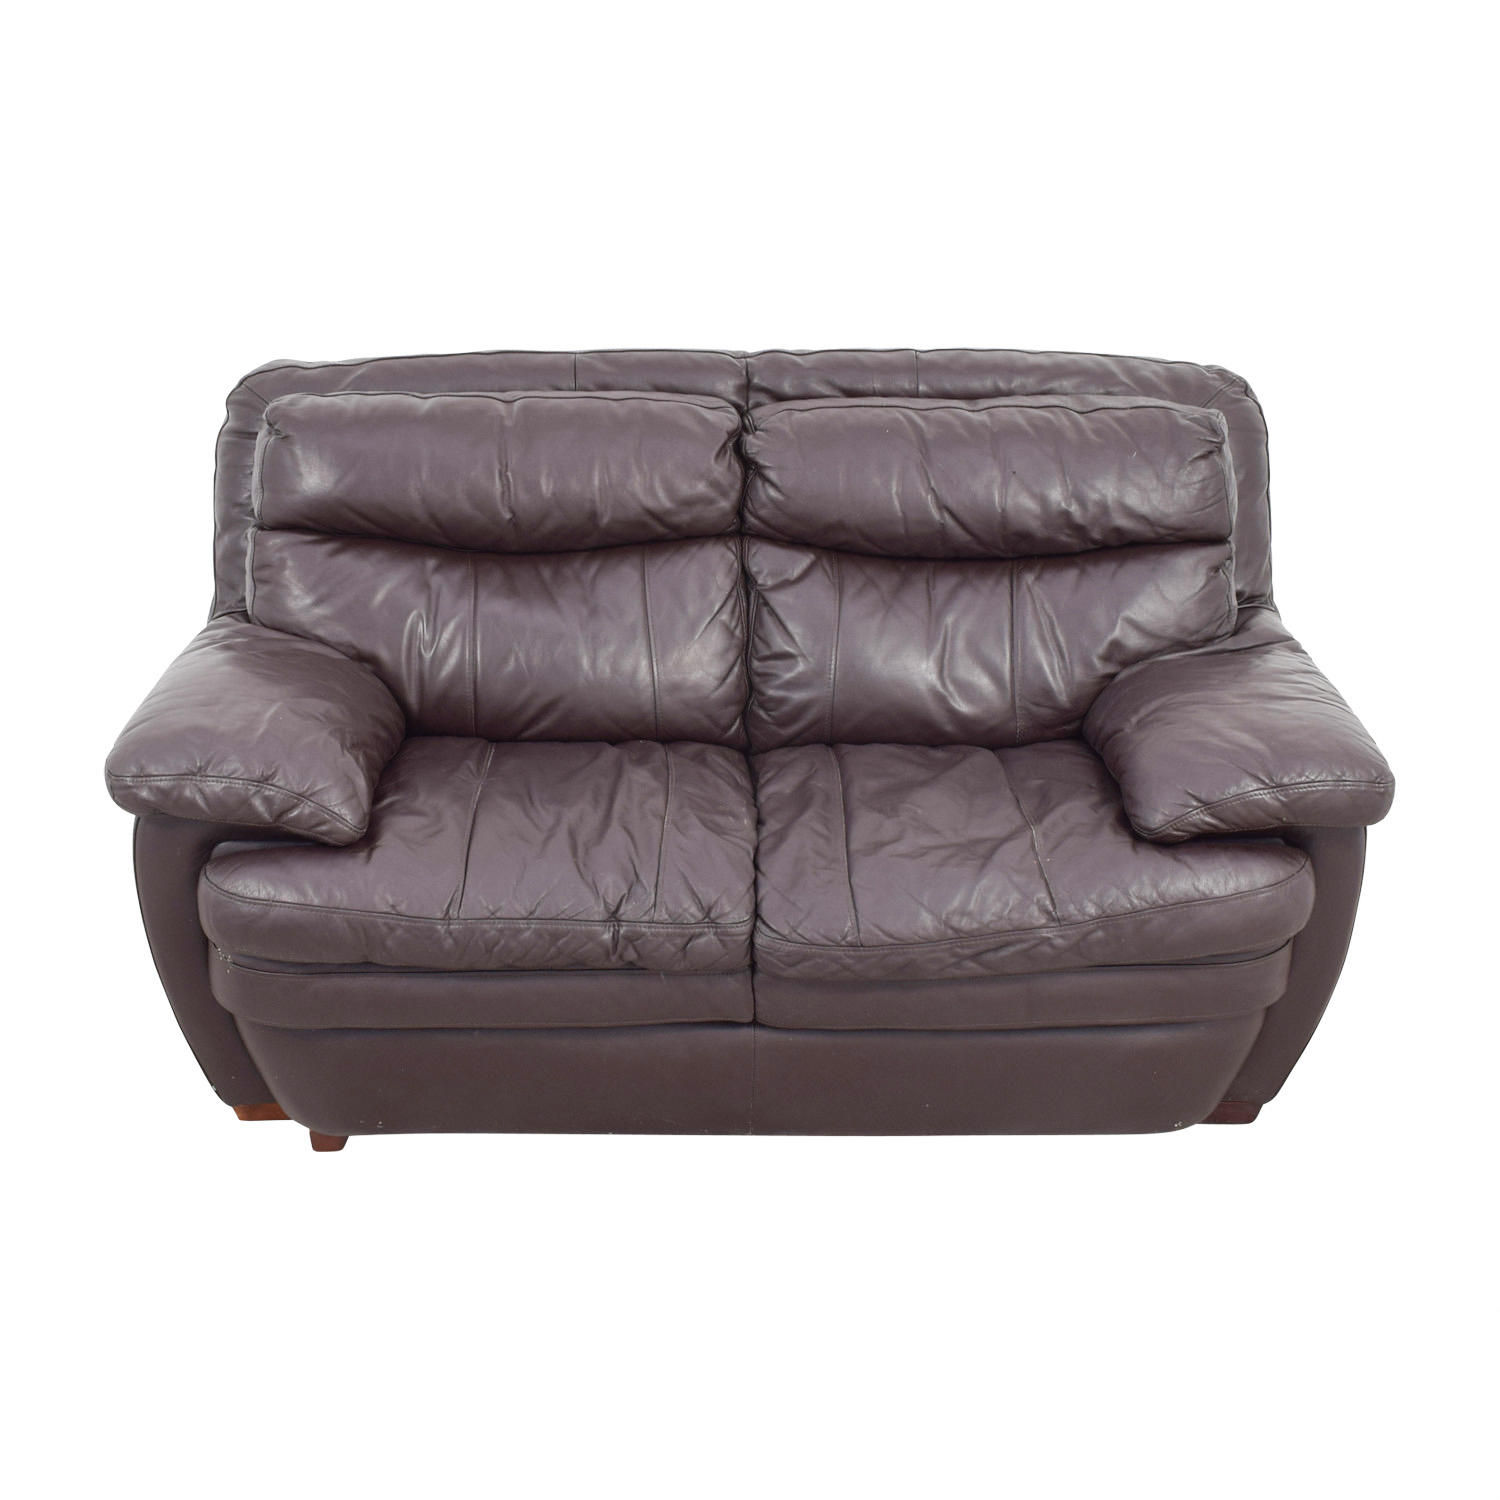 Stupendous 90 Off Bobs Discount Furniture Bobs Furniture Brown Leather Loveseat Sofas Ibusinesslaw Wood Chair Design Ideas Ibusinesslaworg